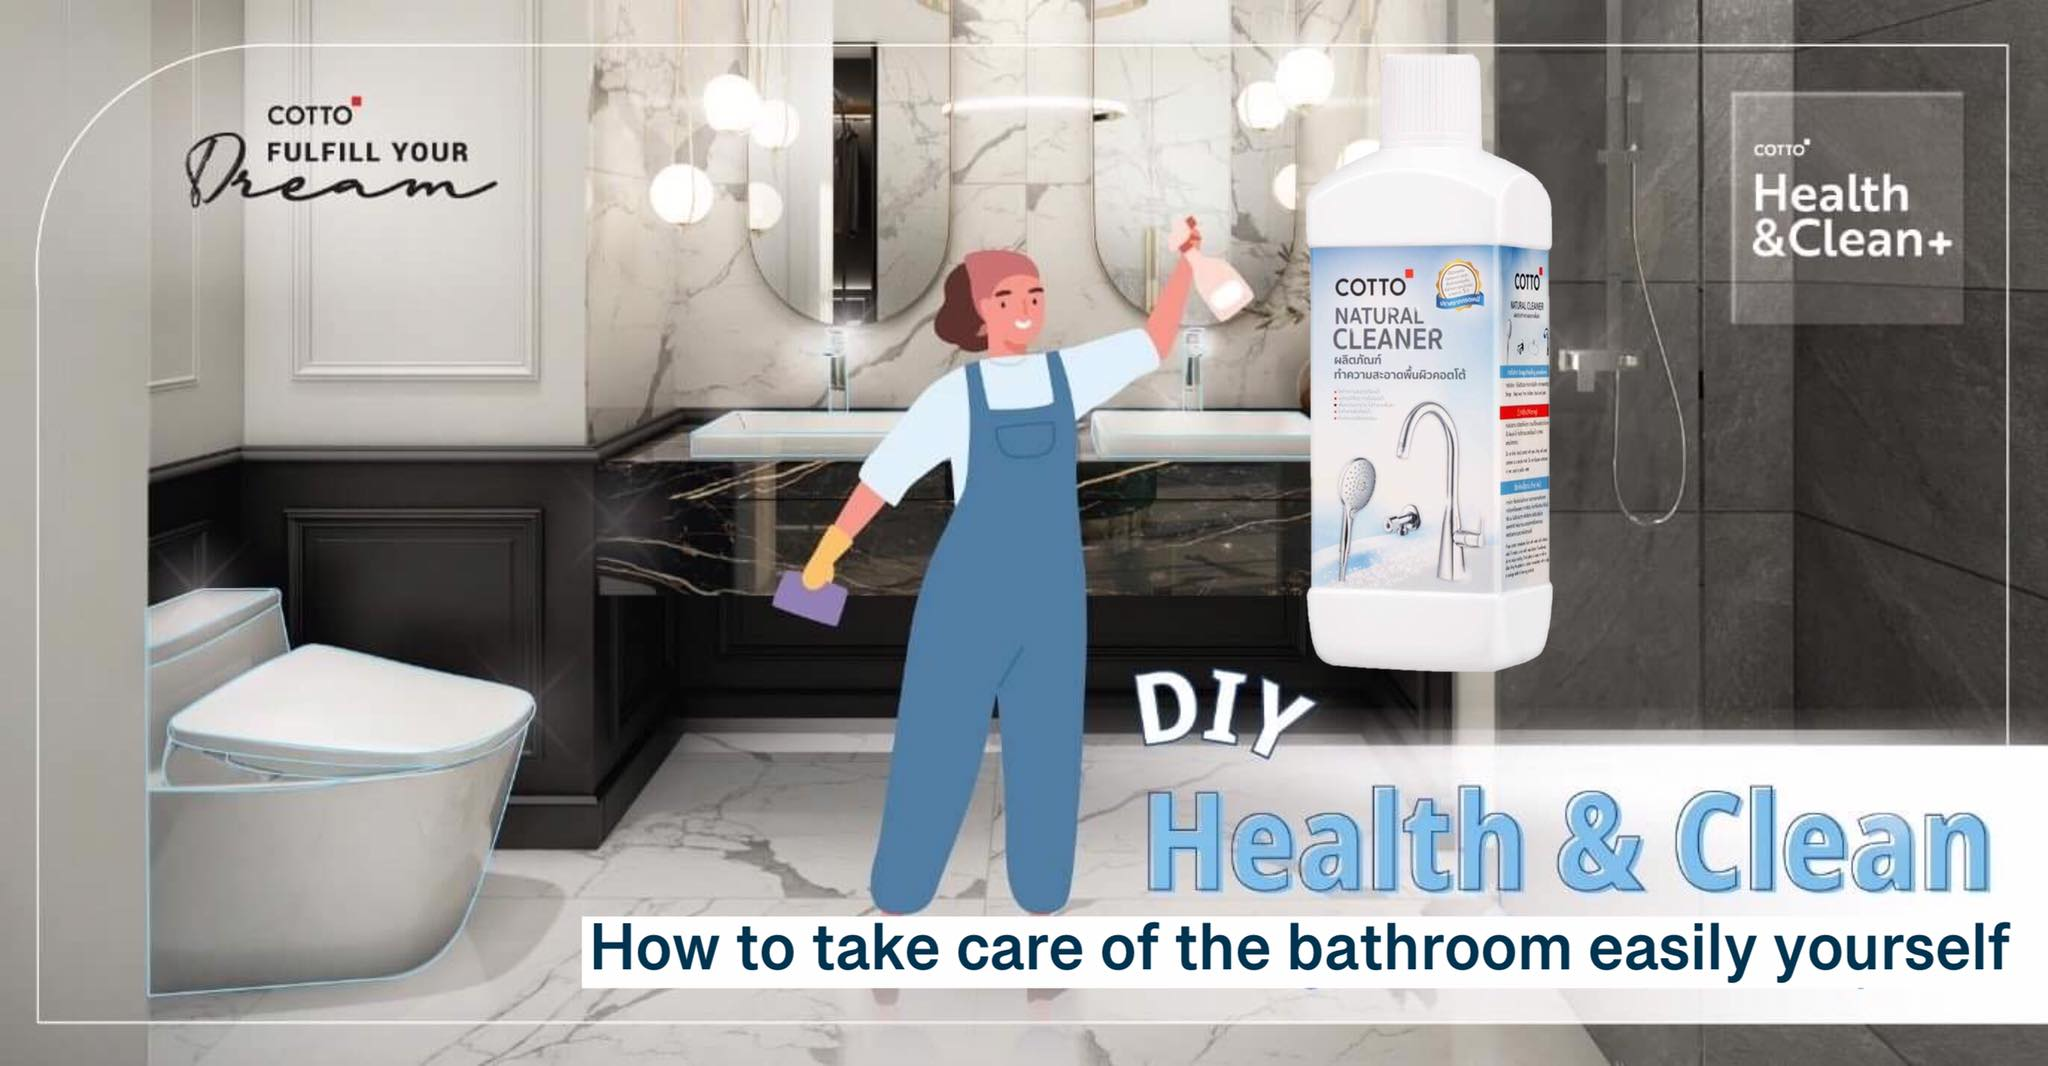 discloses the way how to keep your bathroom clean